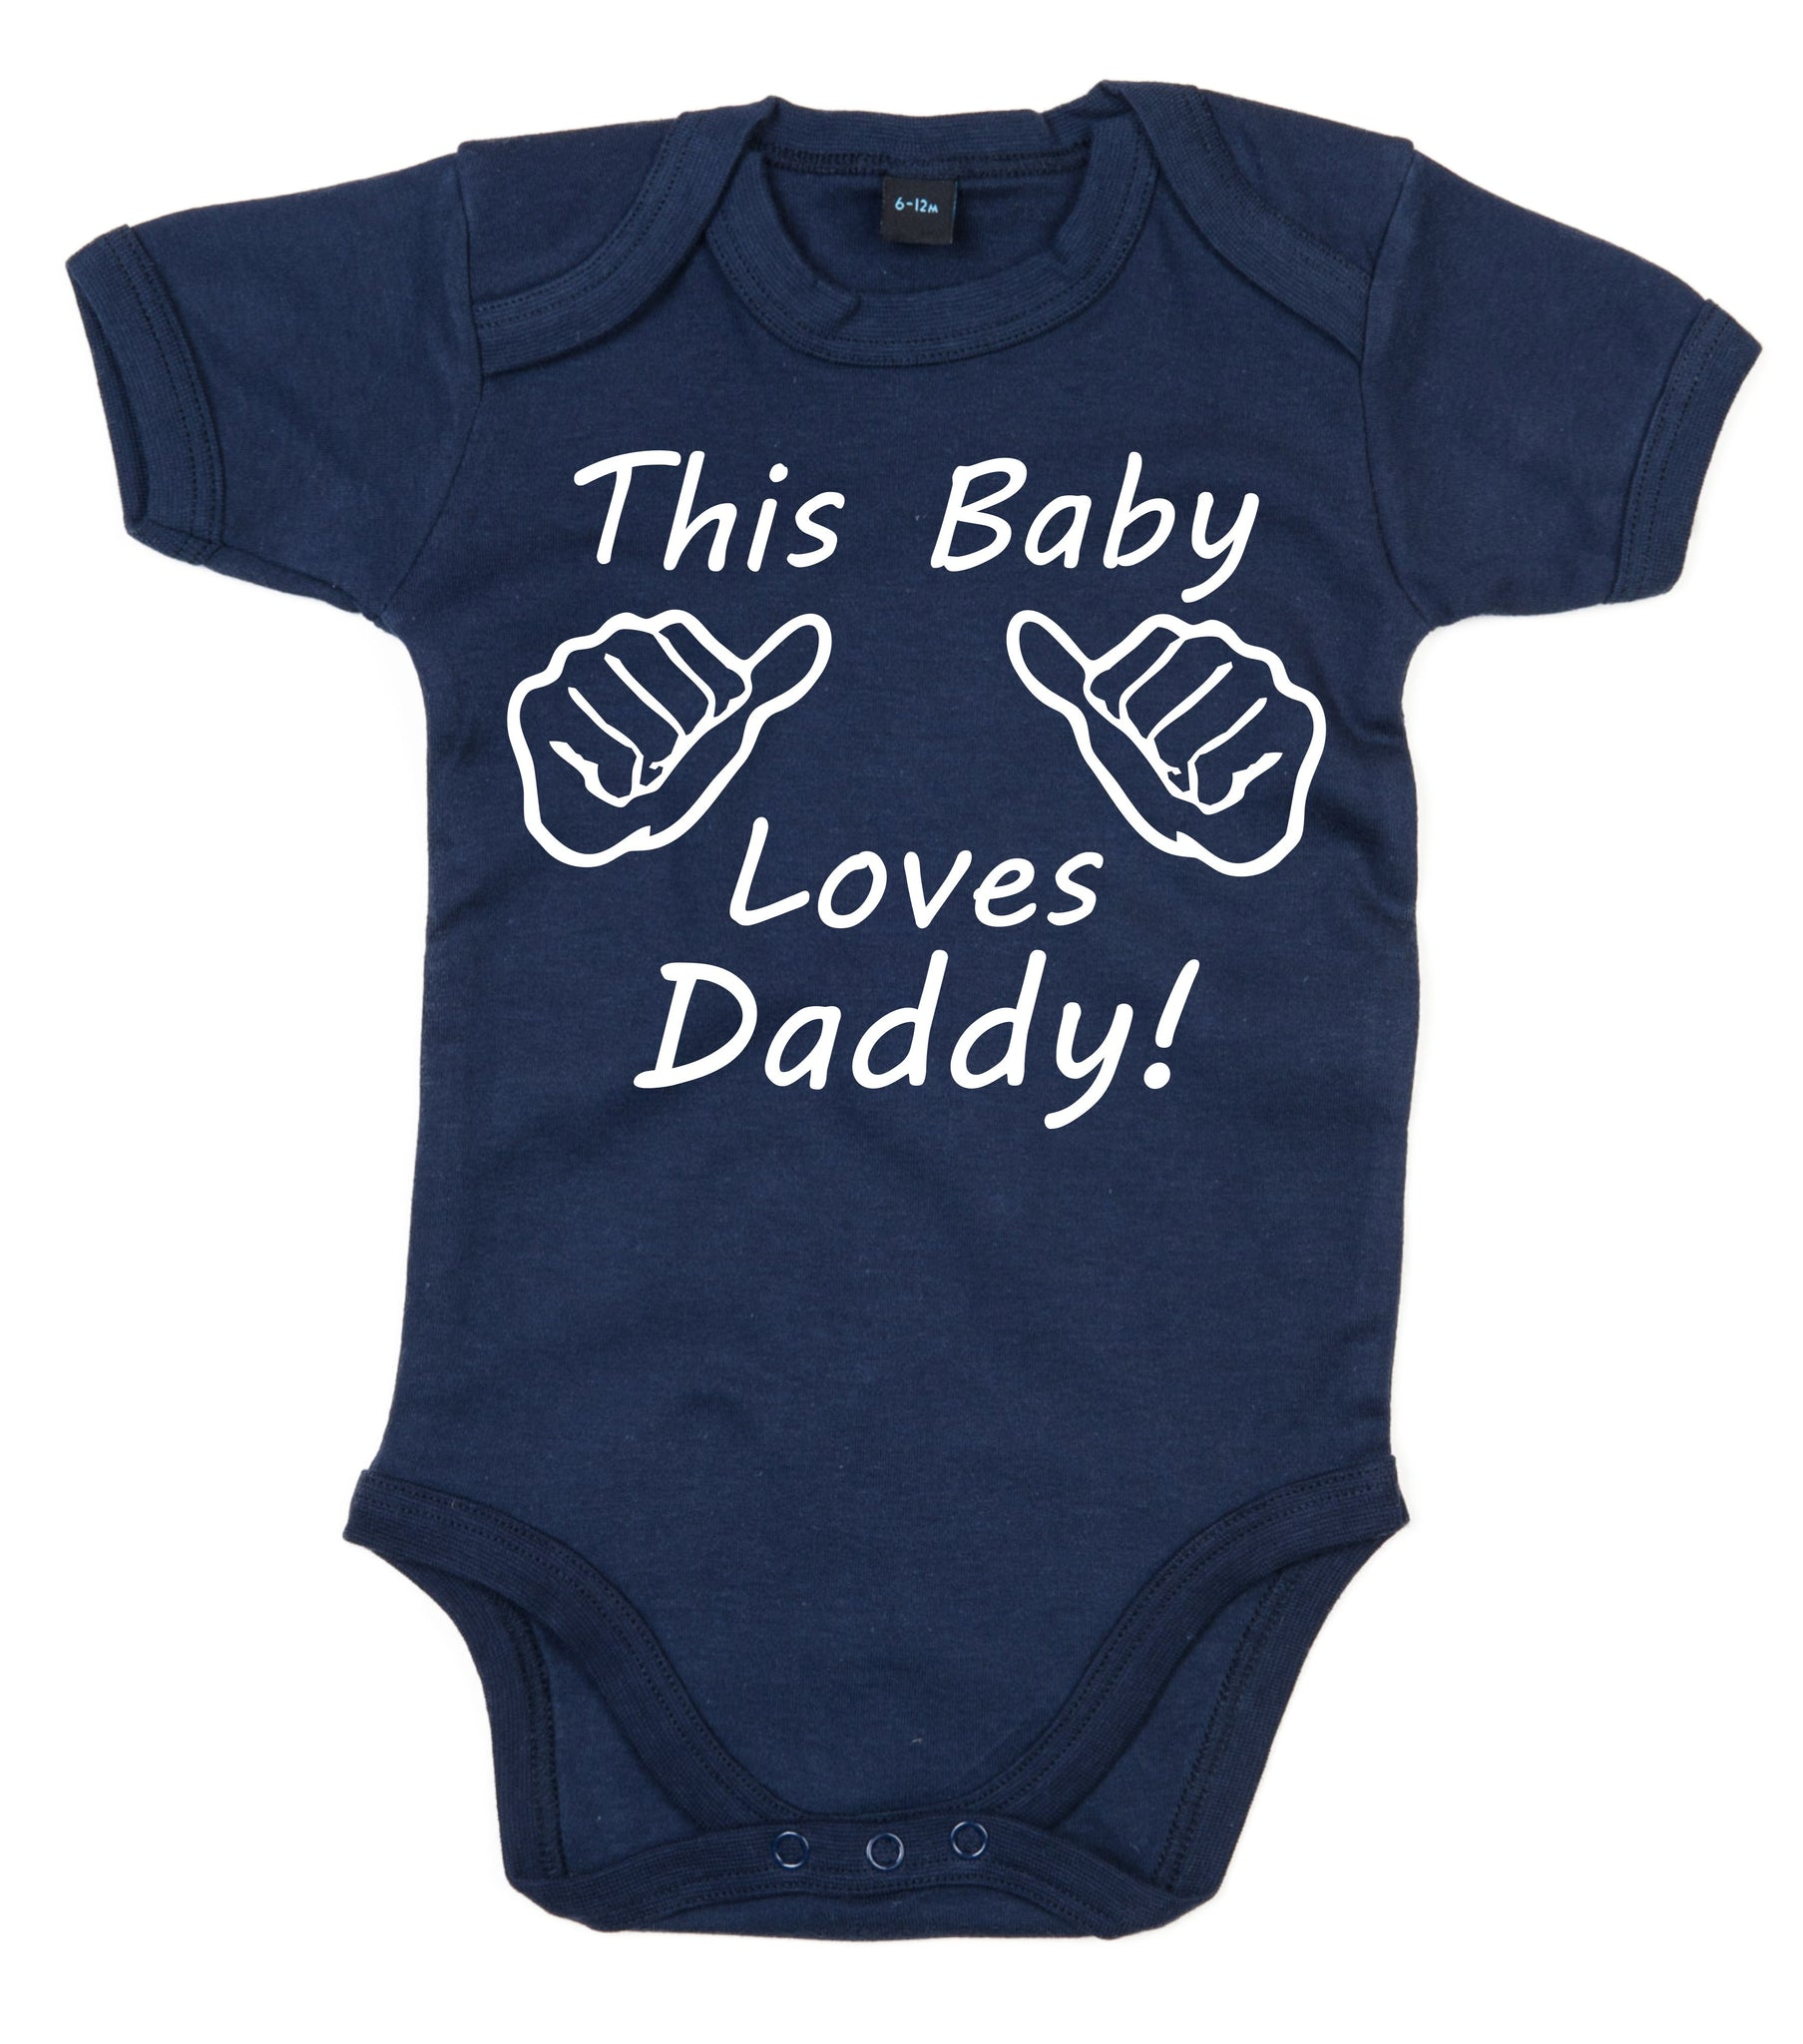 This Baby Loves Daddy Baby Bodysuit